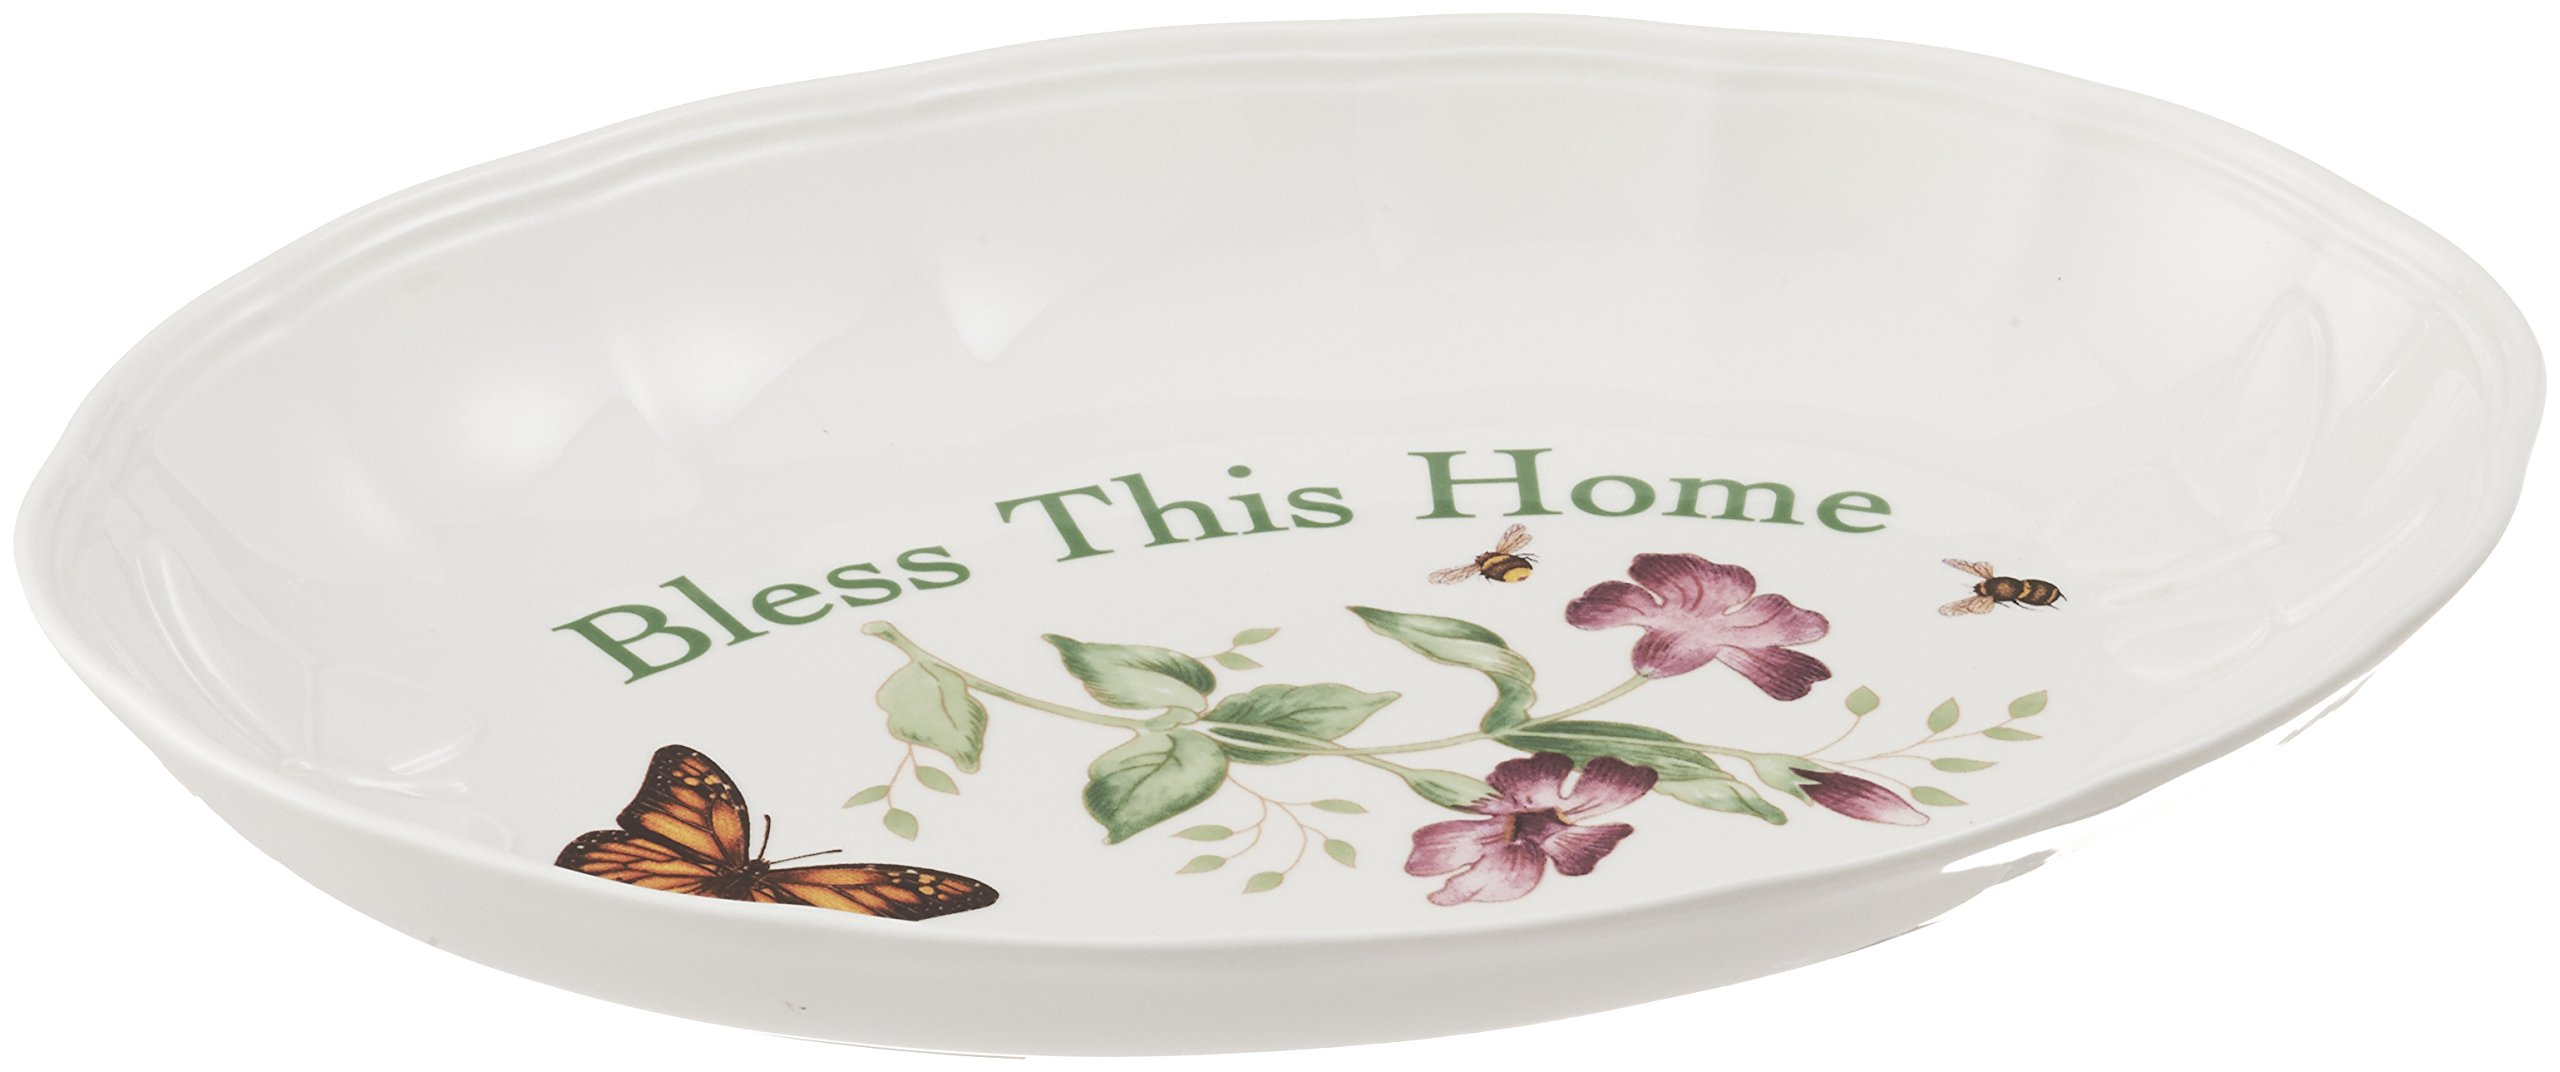 Lenox Butterfly Meadow ''Bless This Home'' Tray